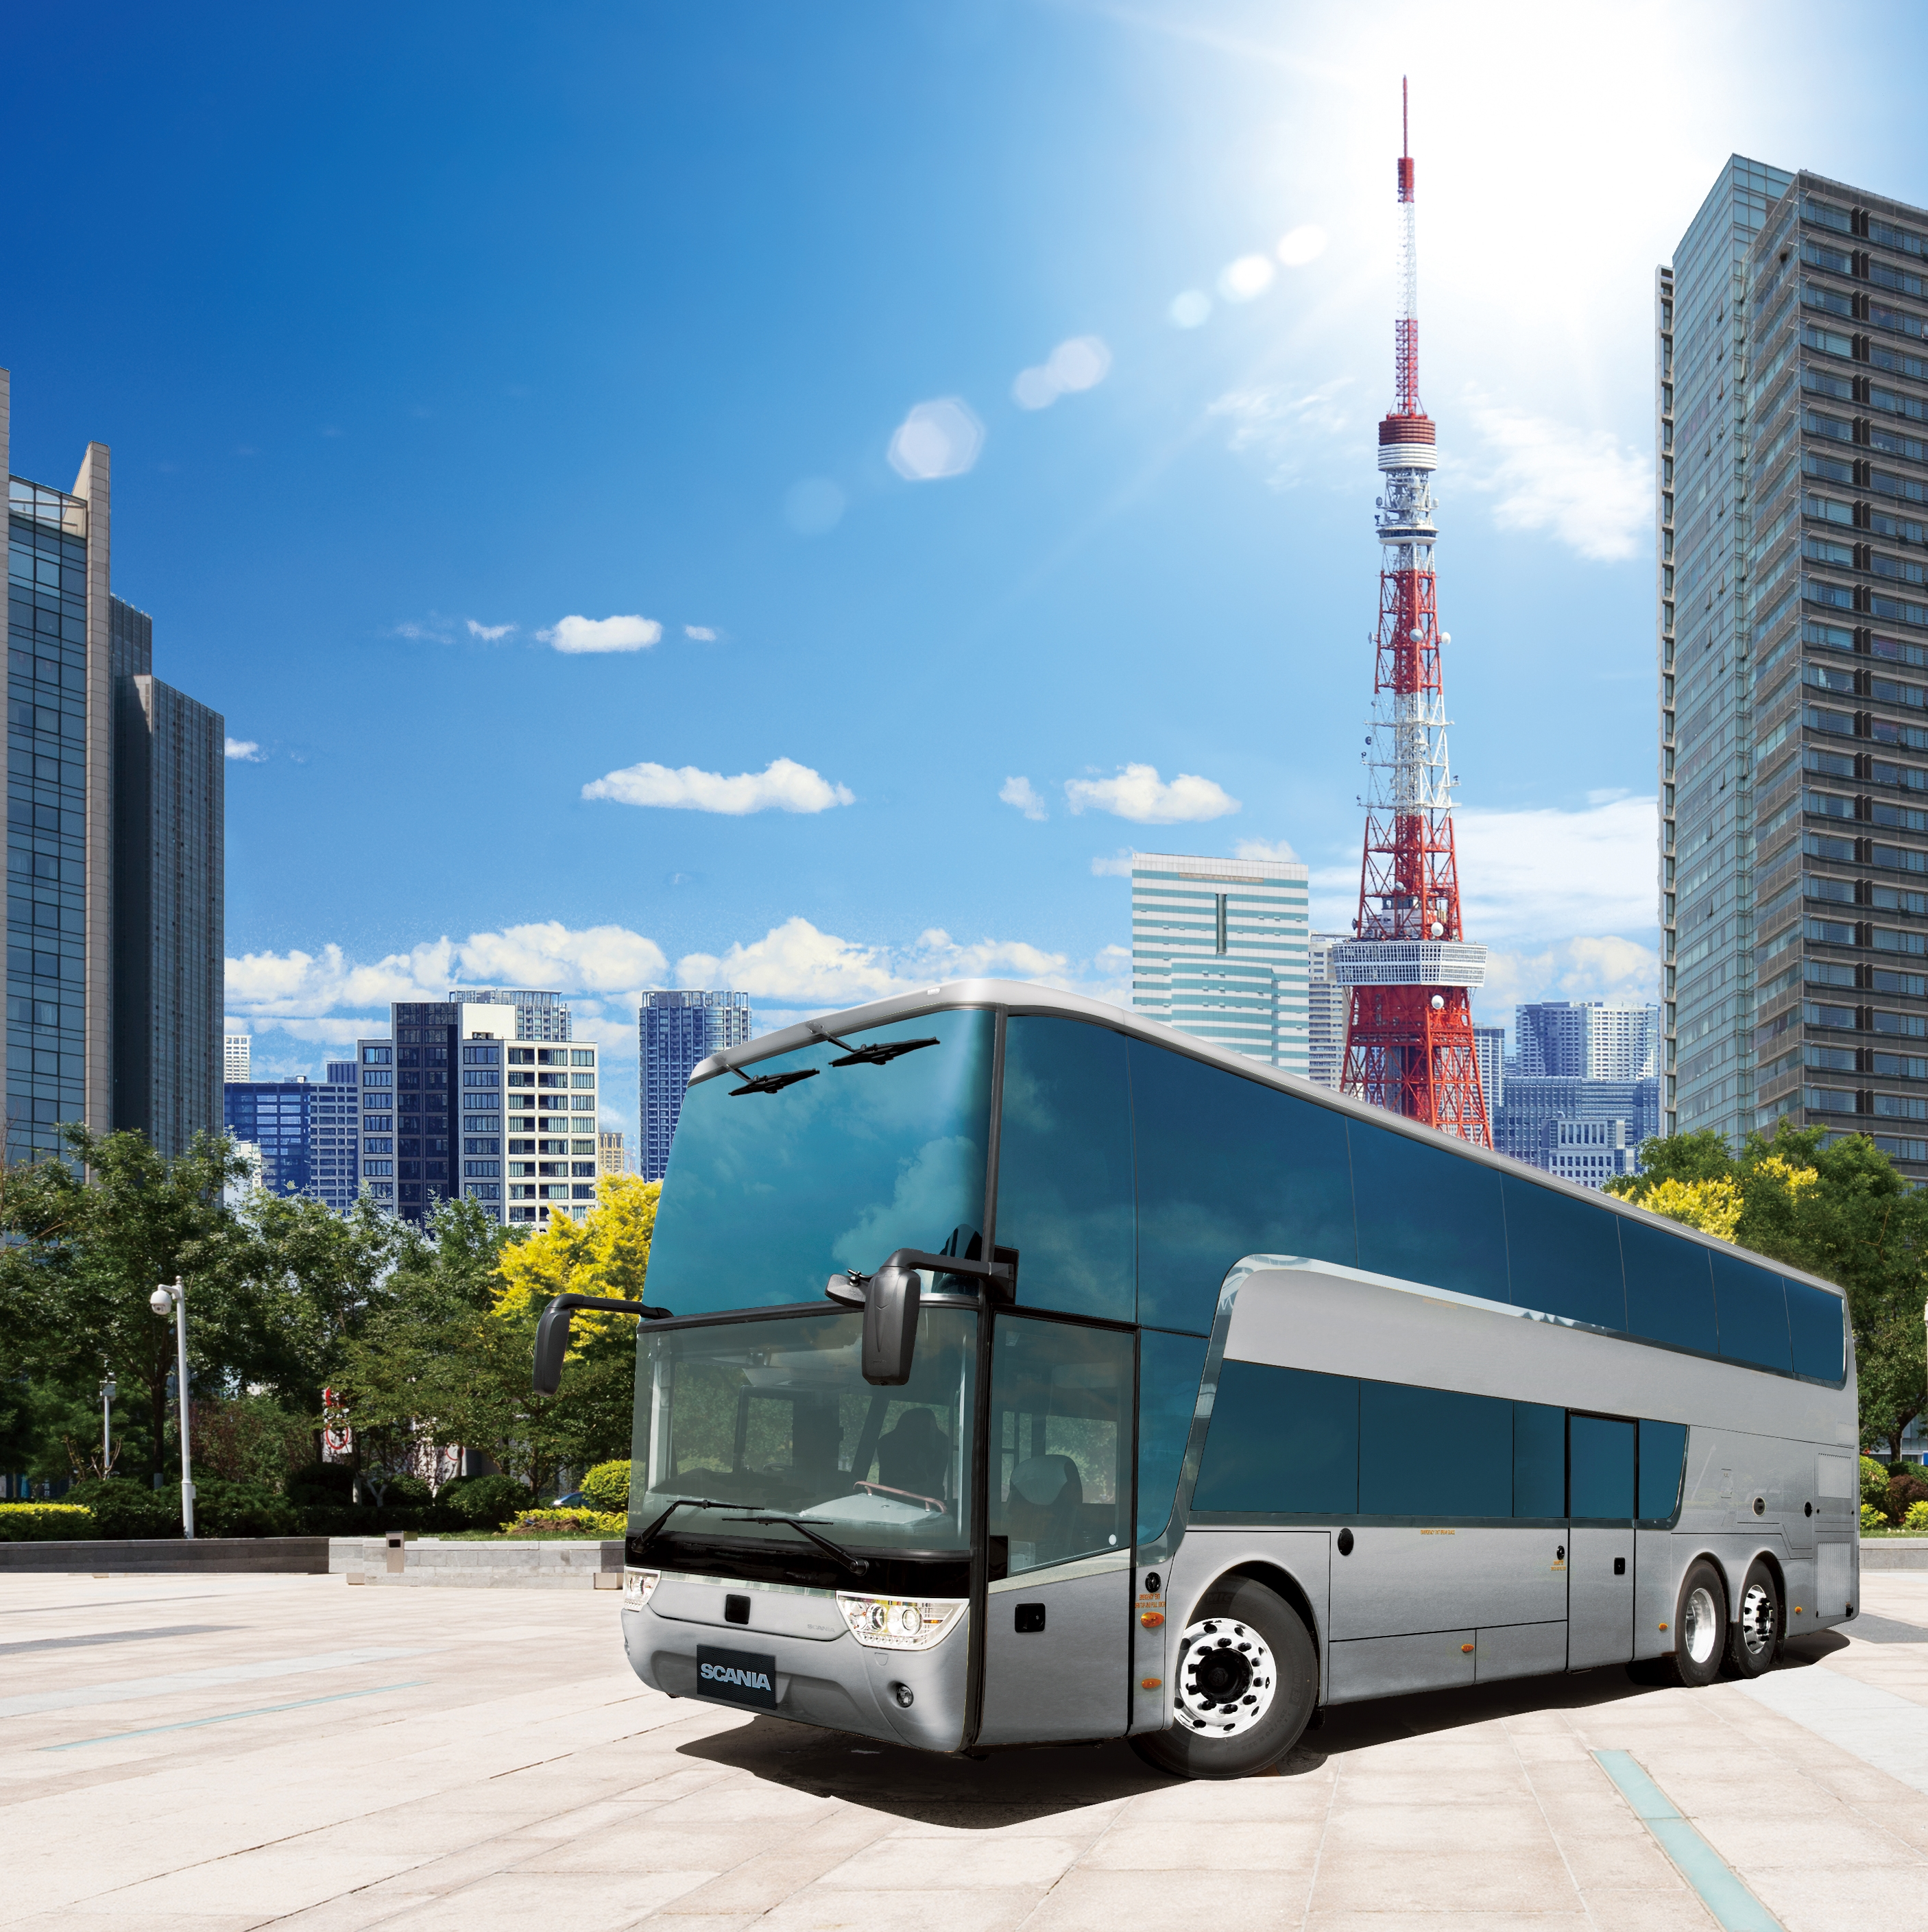 SCANIA_bus_Main_06142016